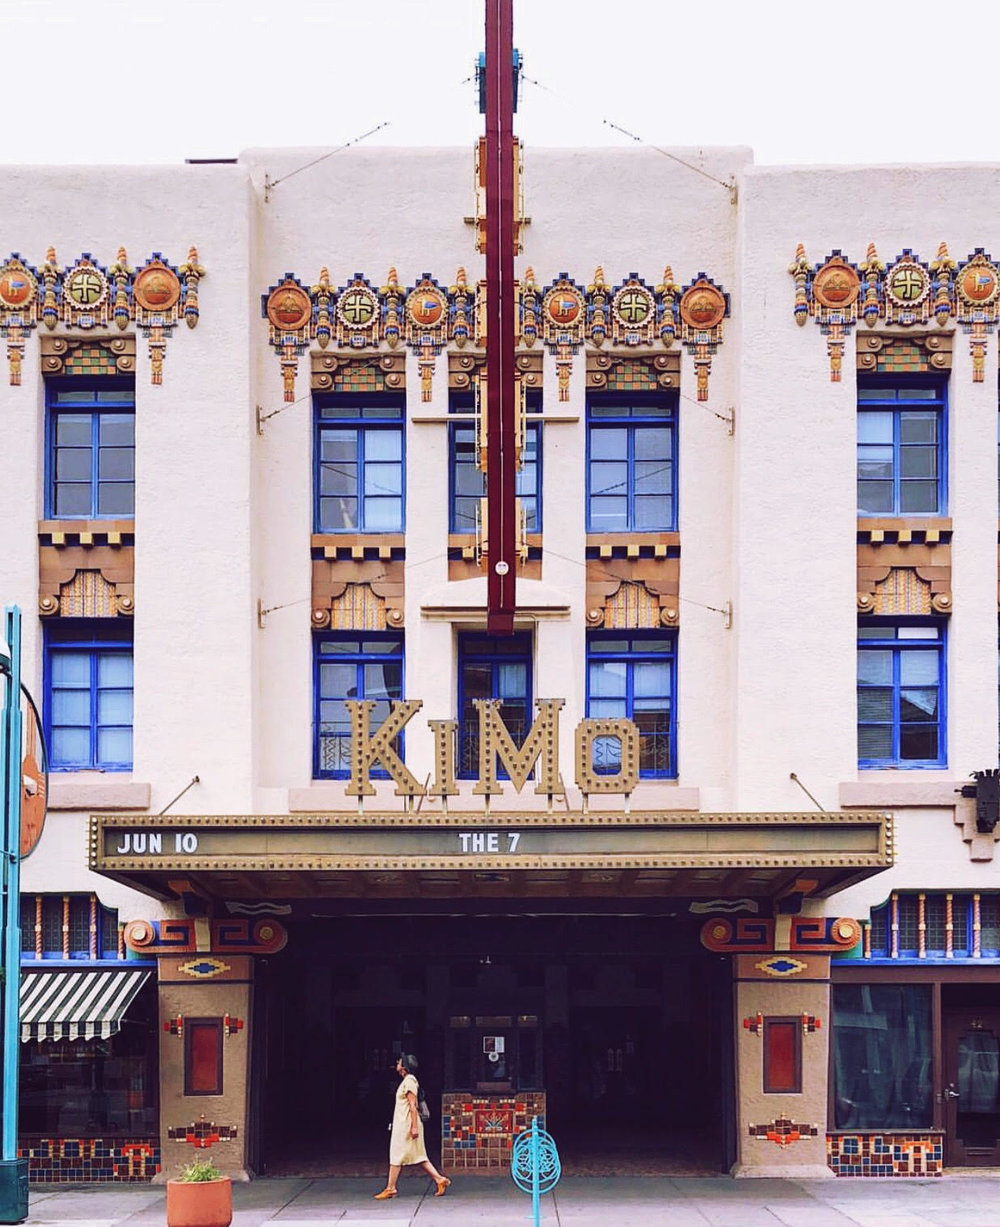 The historic   KiMo Theatre   was completed in 1927 along Route 66 in Albuquerque, NM. The stunning structure is a rare example of 'Pueblo Deco' architecture, a style that combined elements of Art Deco and Pueblo Revival design. The KiMo was originally owned by  Oreste Bachechi , an Italian immigrant and entrepreneur who achieved his own American Dream after starting several successful businesses in New Mexico, inspiring other Italians to try their luck in Albuquerque, and then assisting his countrymen by loaning them money for passage and helping them find work when they arrived.  Photo by  Matthew Dickey